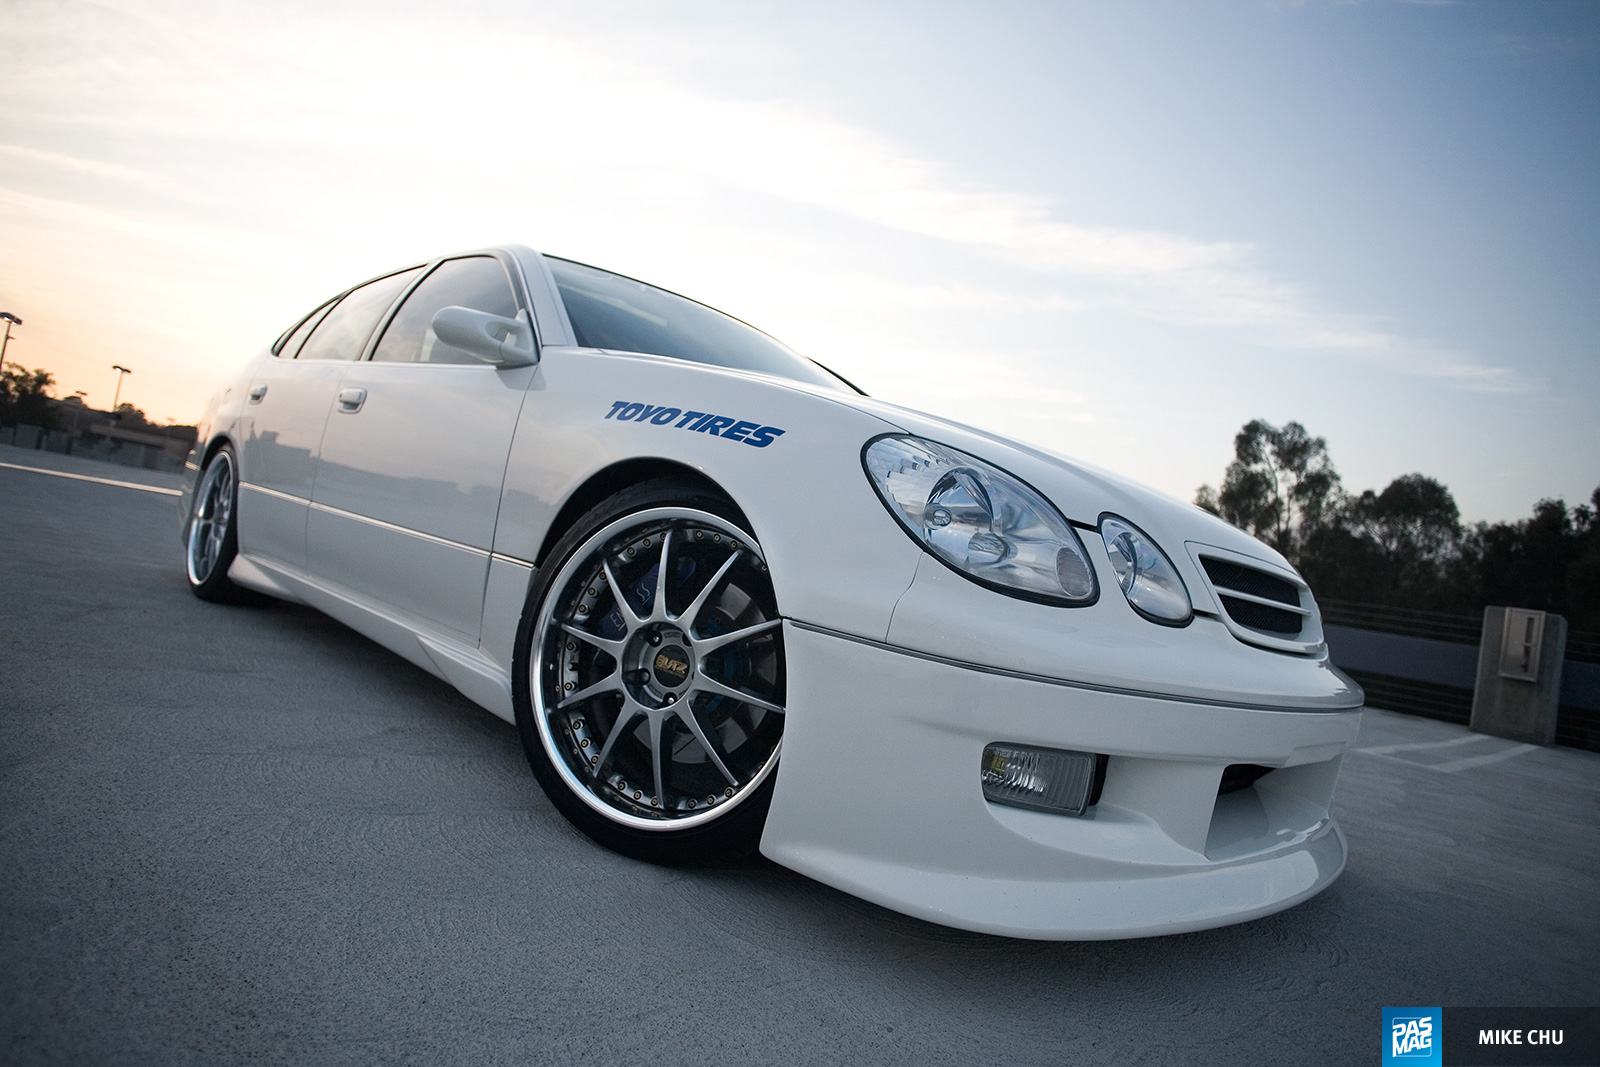 14 Kirby Wang 1998 Lexus GS300 Team Hybrid pasmag